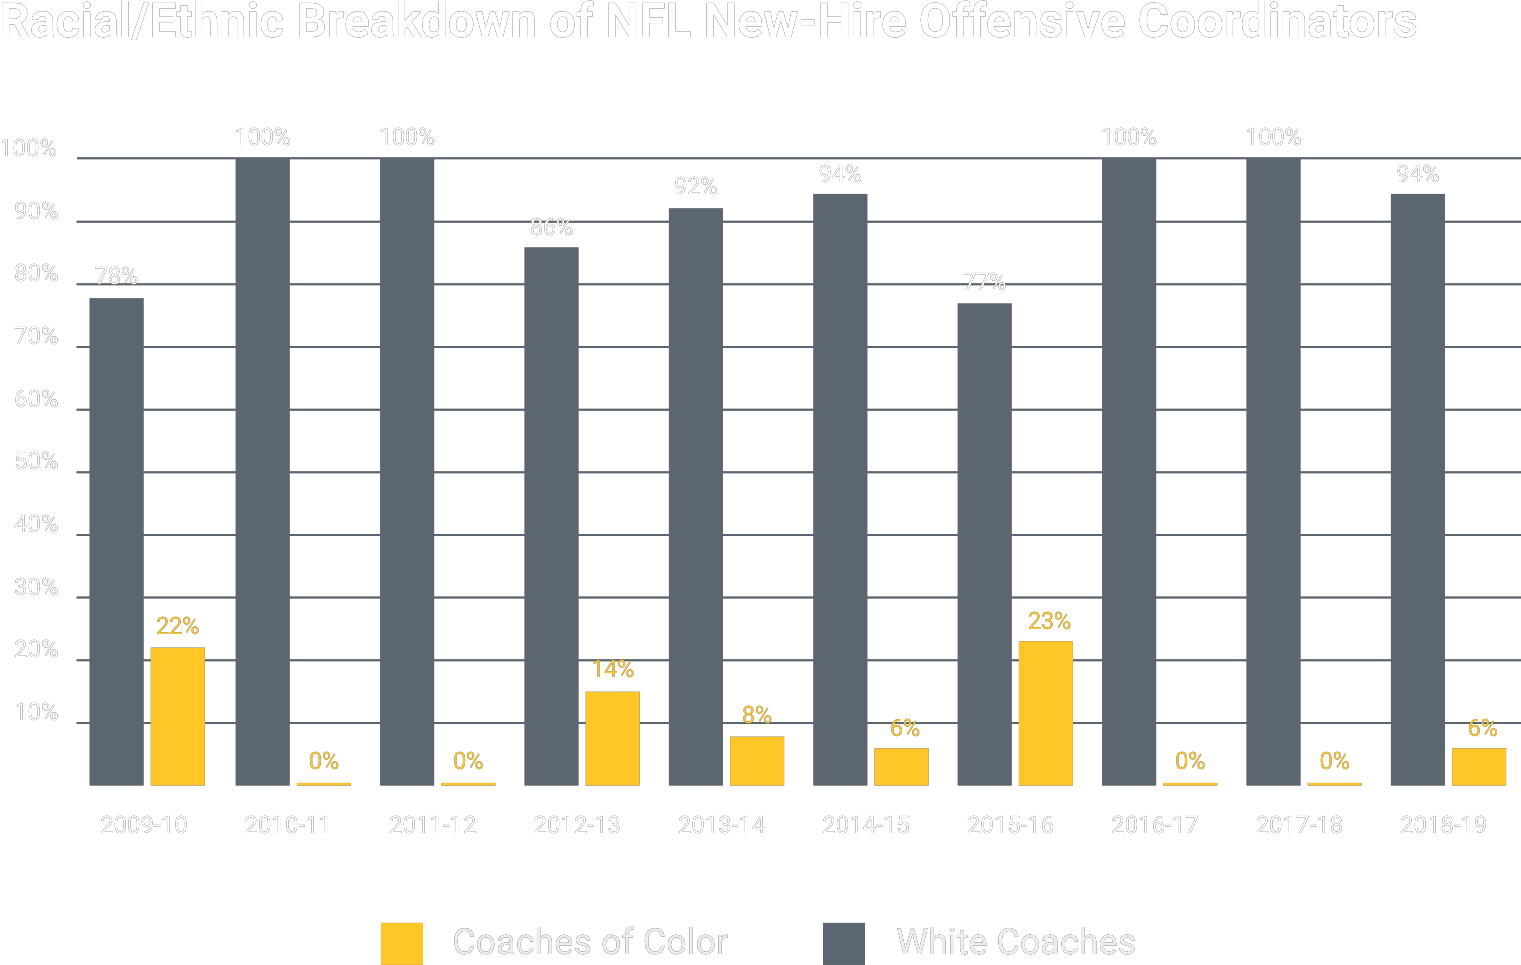 Racial/Ethnic Breakdown of New-Hire NFL Offensive Coordinators and Defensive Coordinators